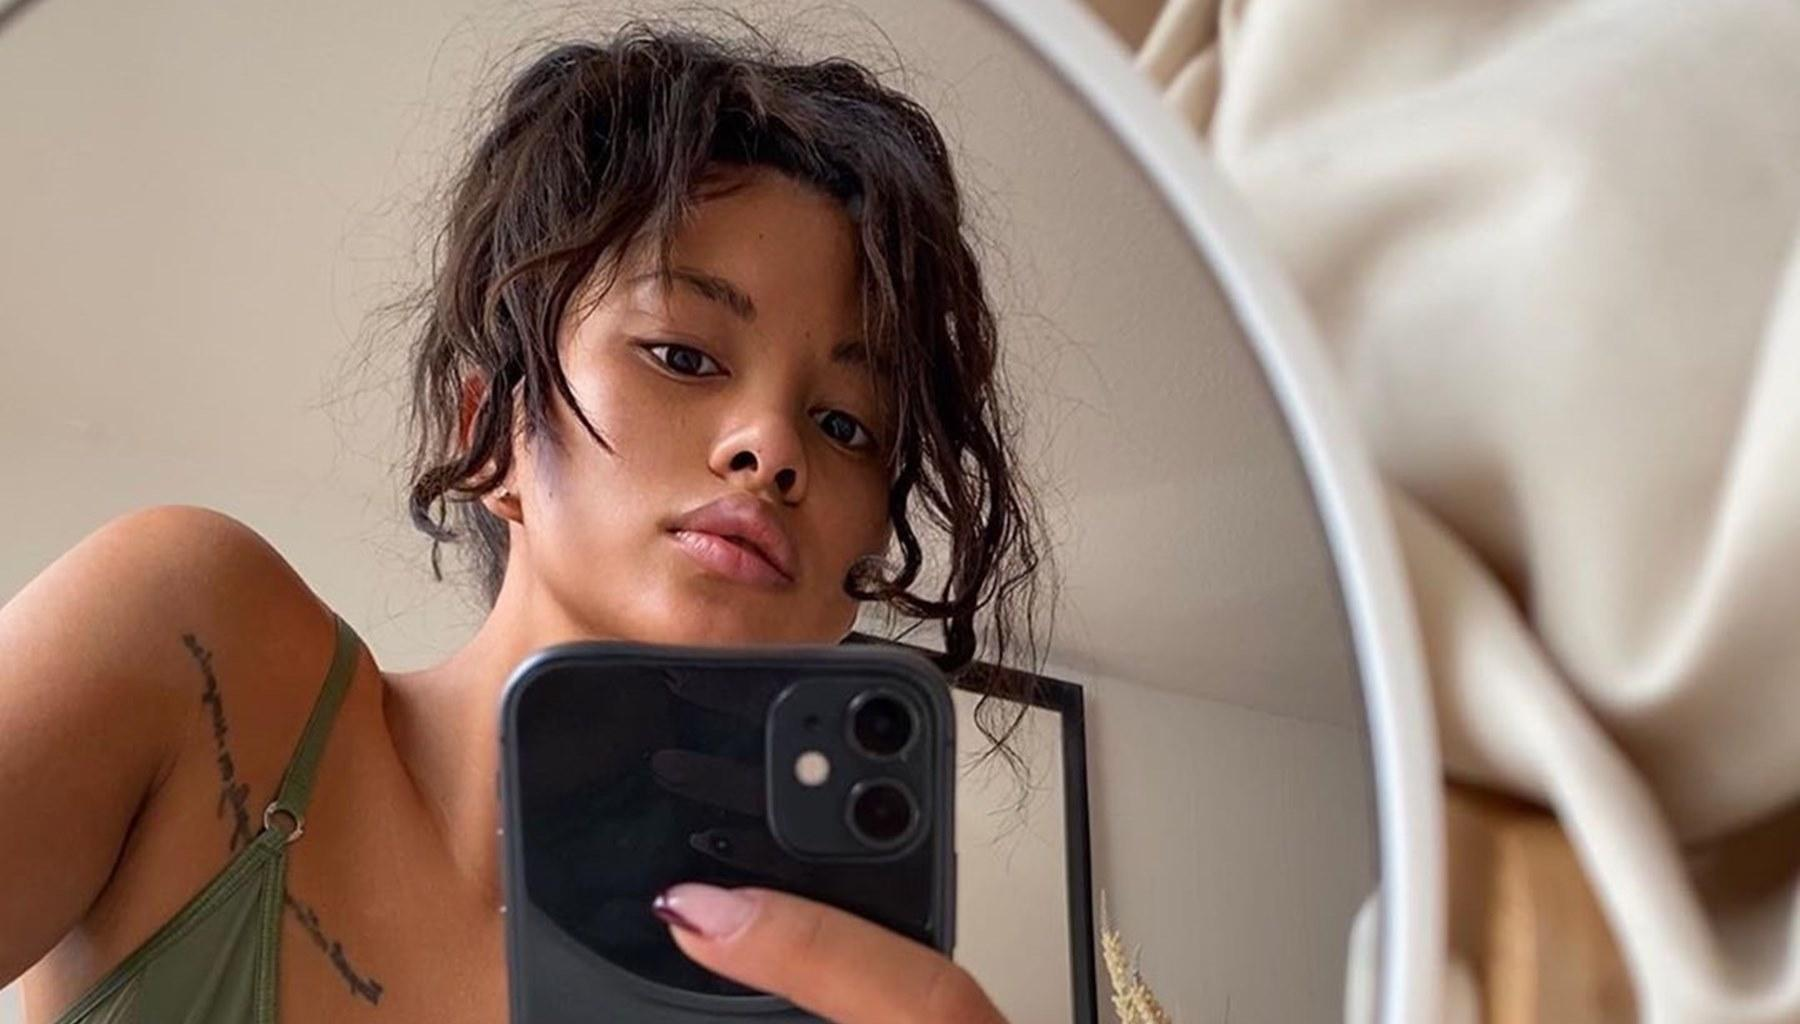 Chris Brown's Baby Mama, Ammika Harris, Hints That She And The 'Loyal' Singer Are Together Physically Again With These Photos As She Takes Measures To Protect Her Privacy